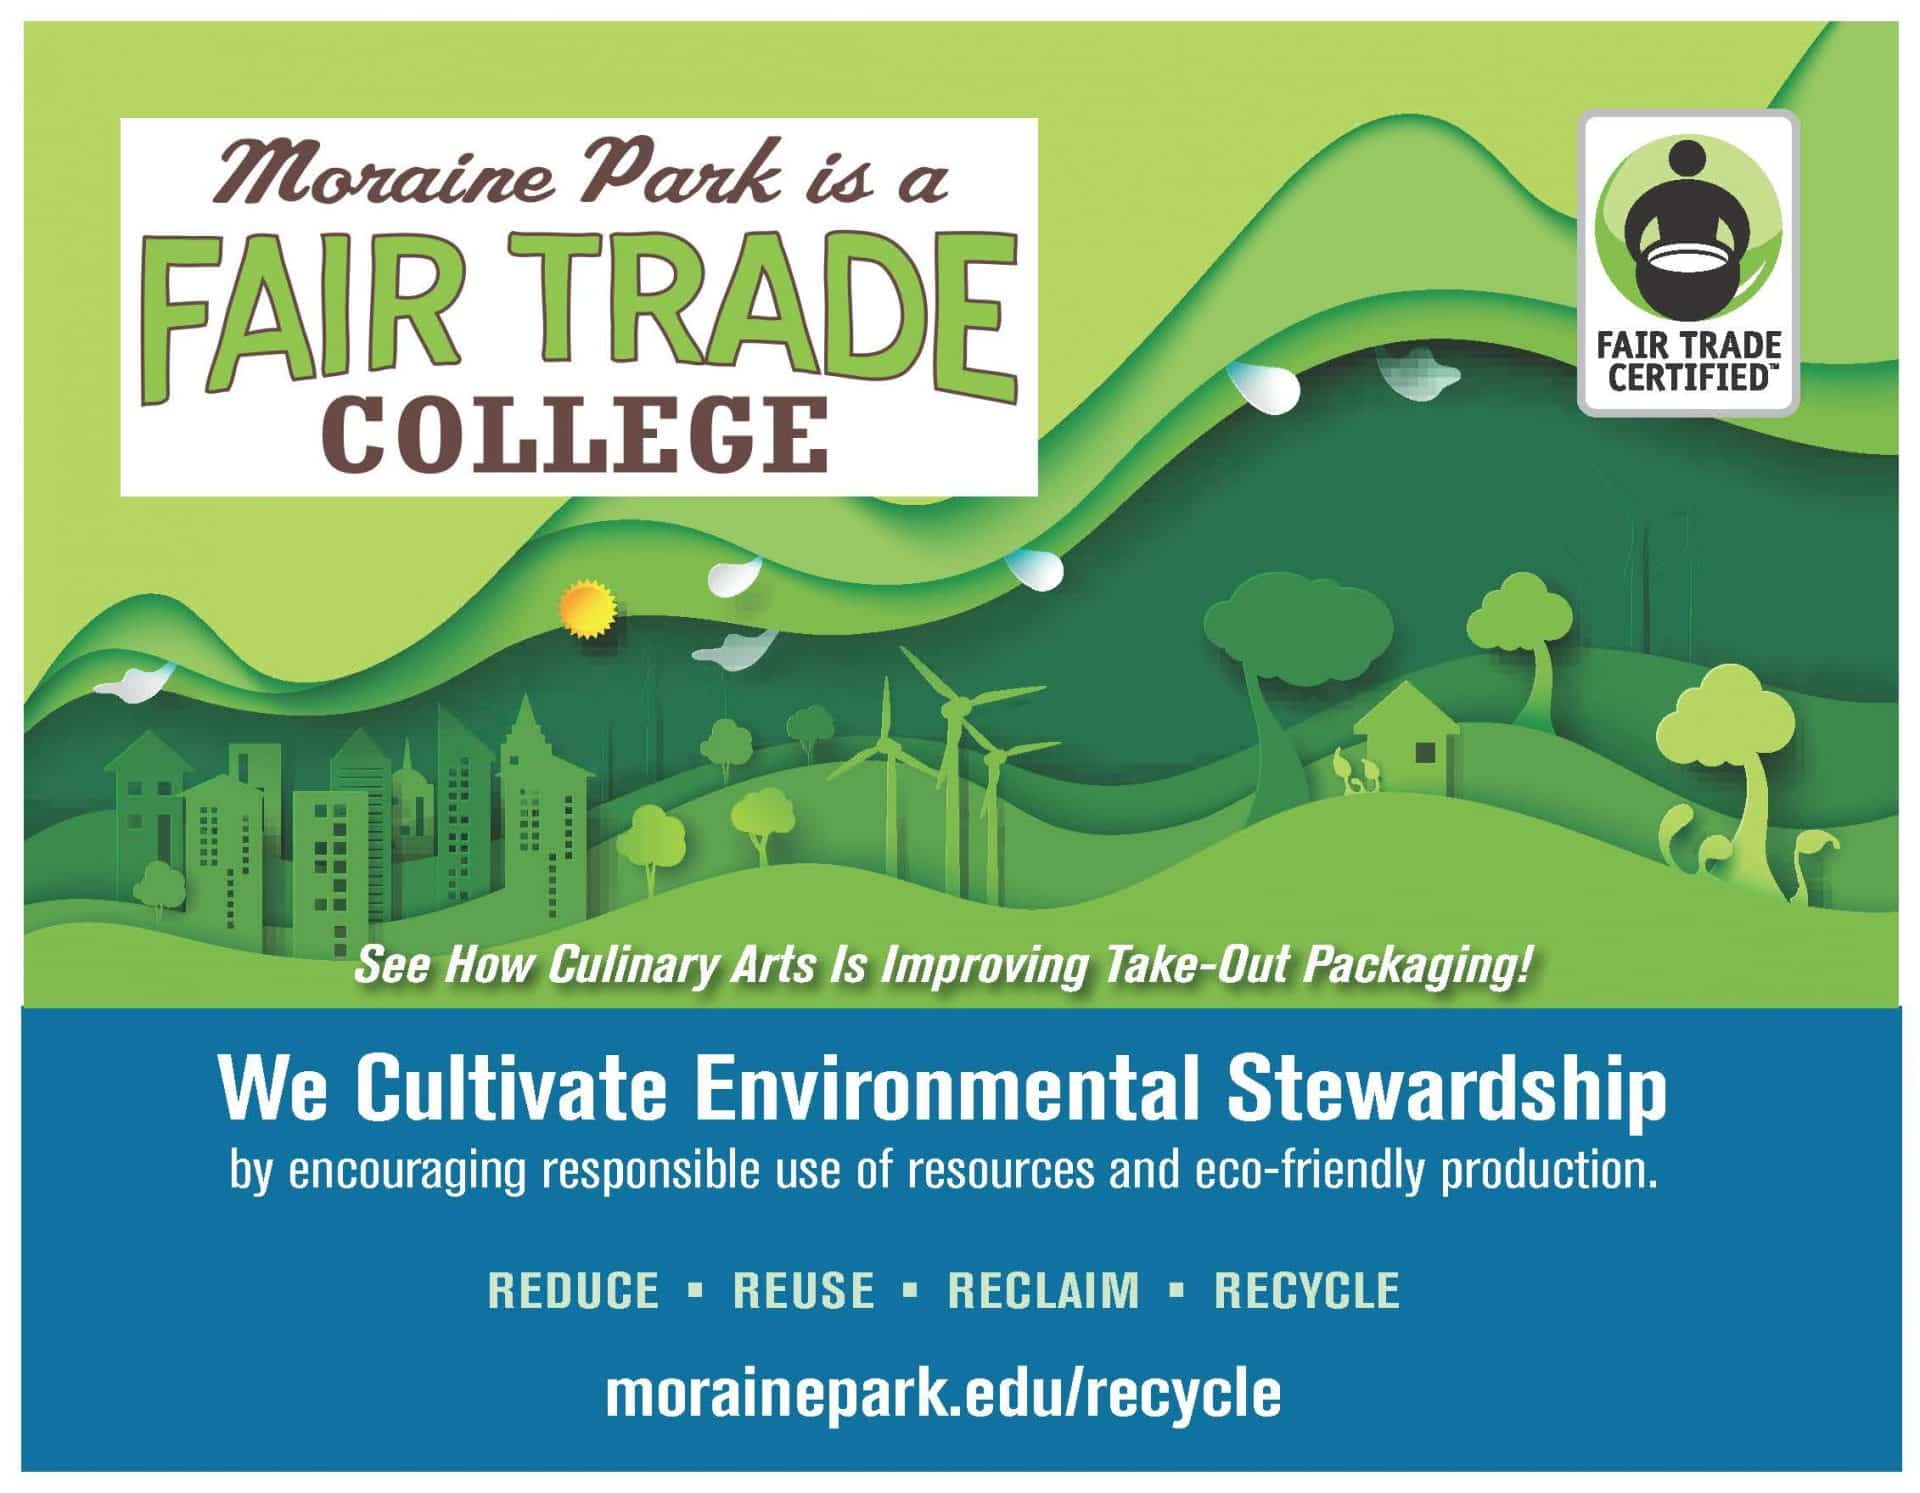 we cultivate environmental stewardship poster